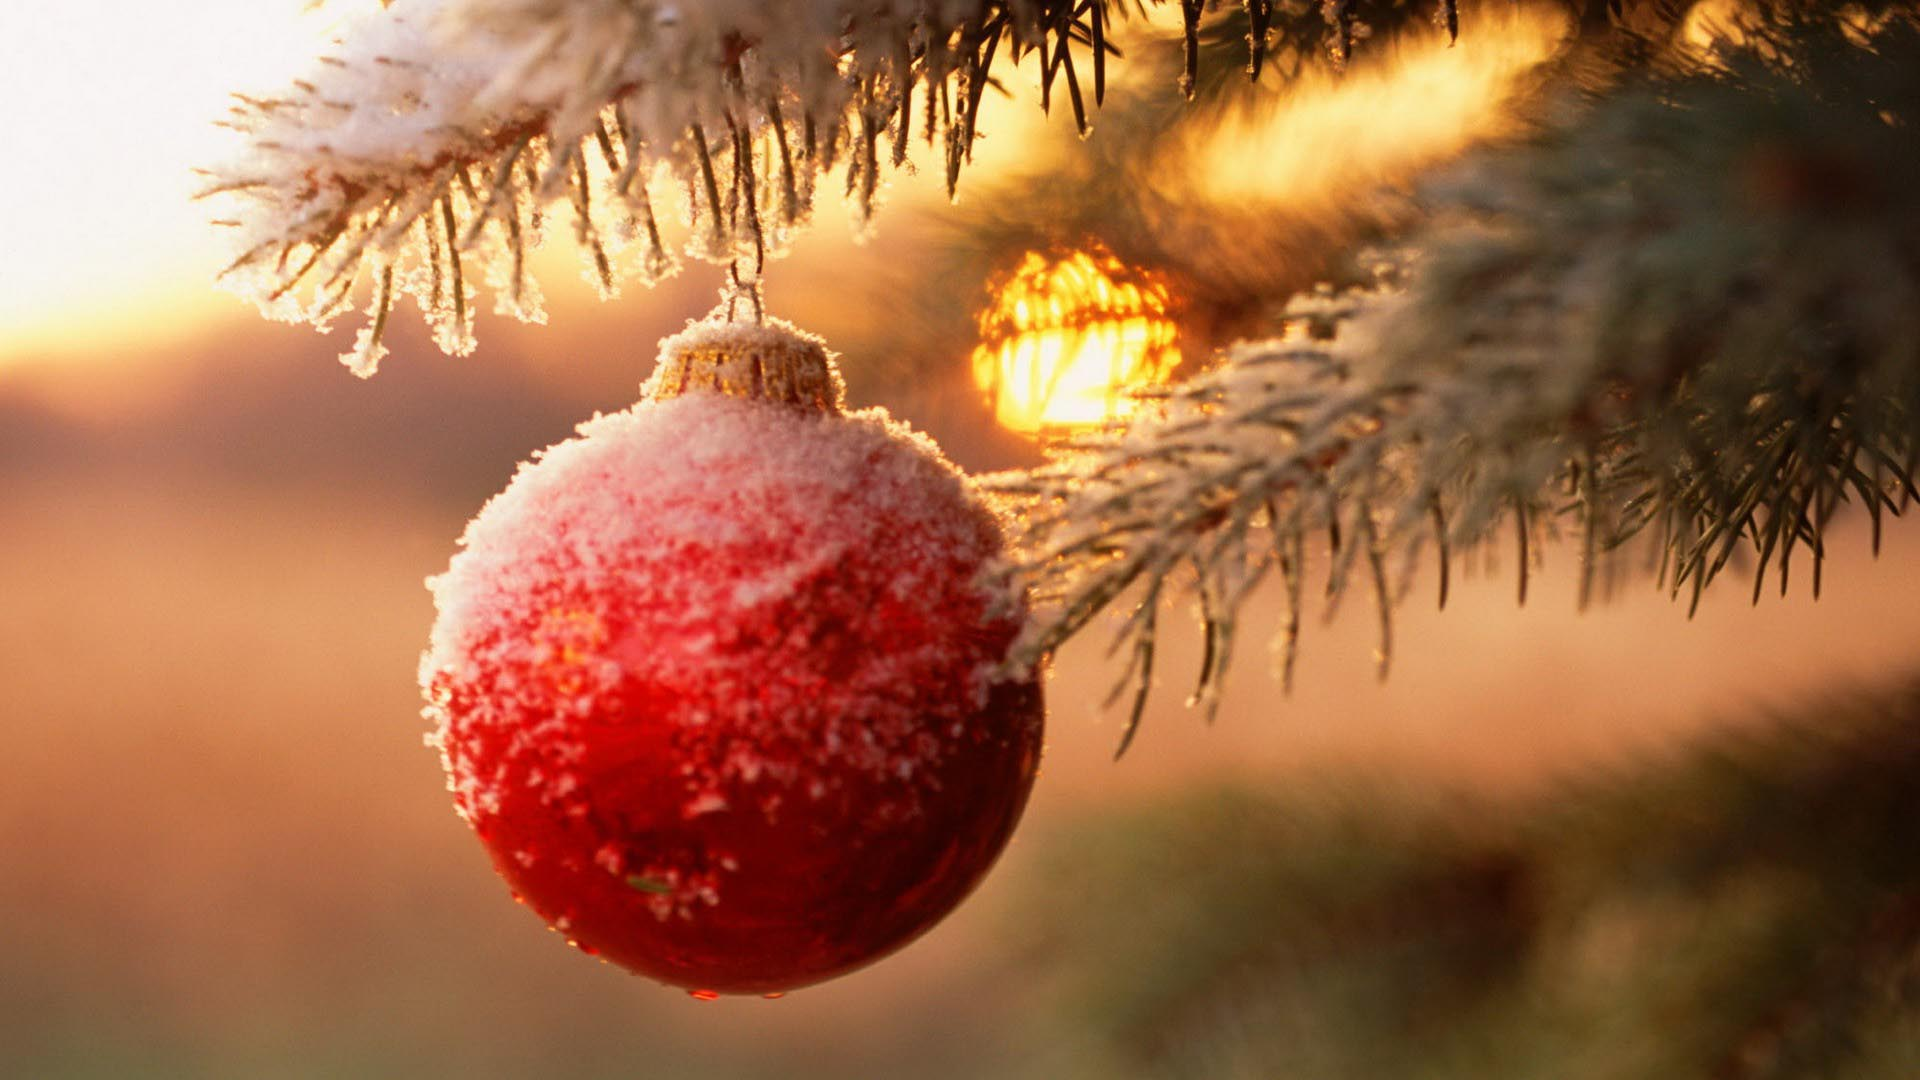 Christmas Wallpaper Tumblr , HD Wallpaper & Backgrounds